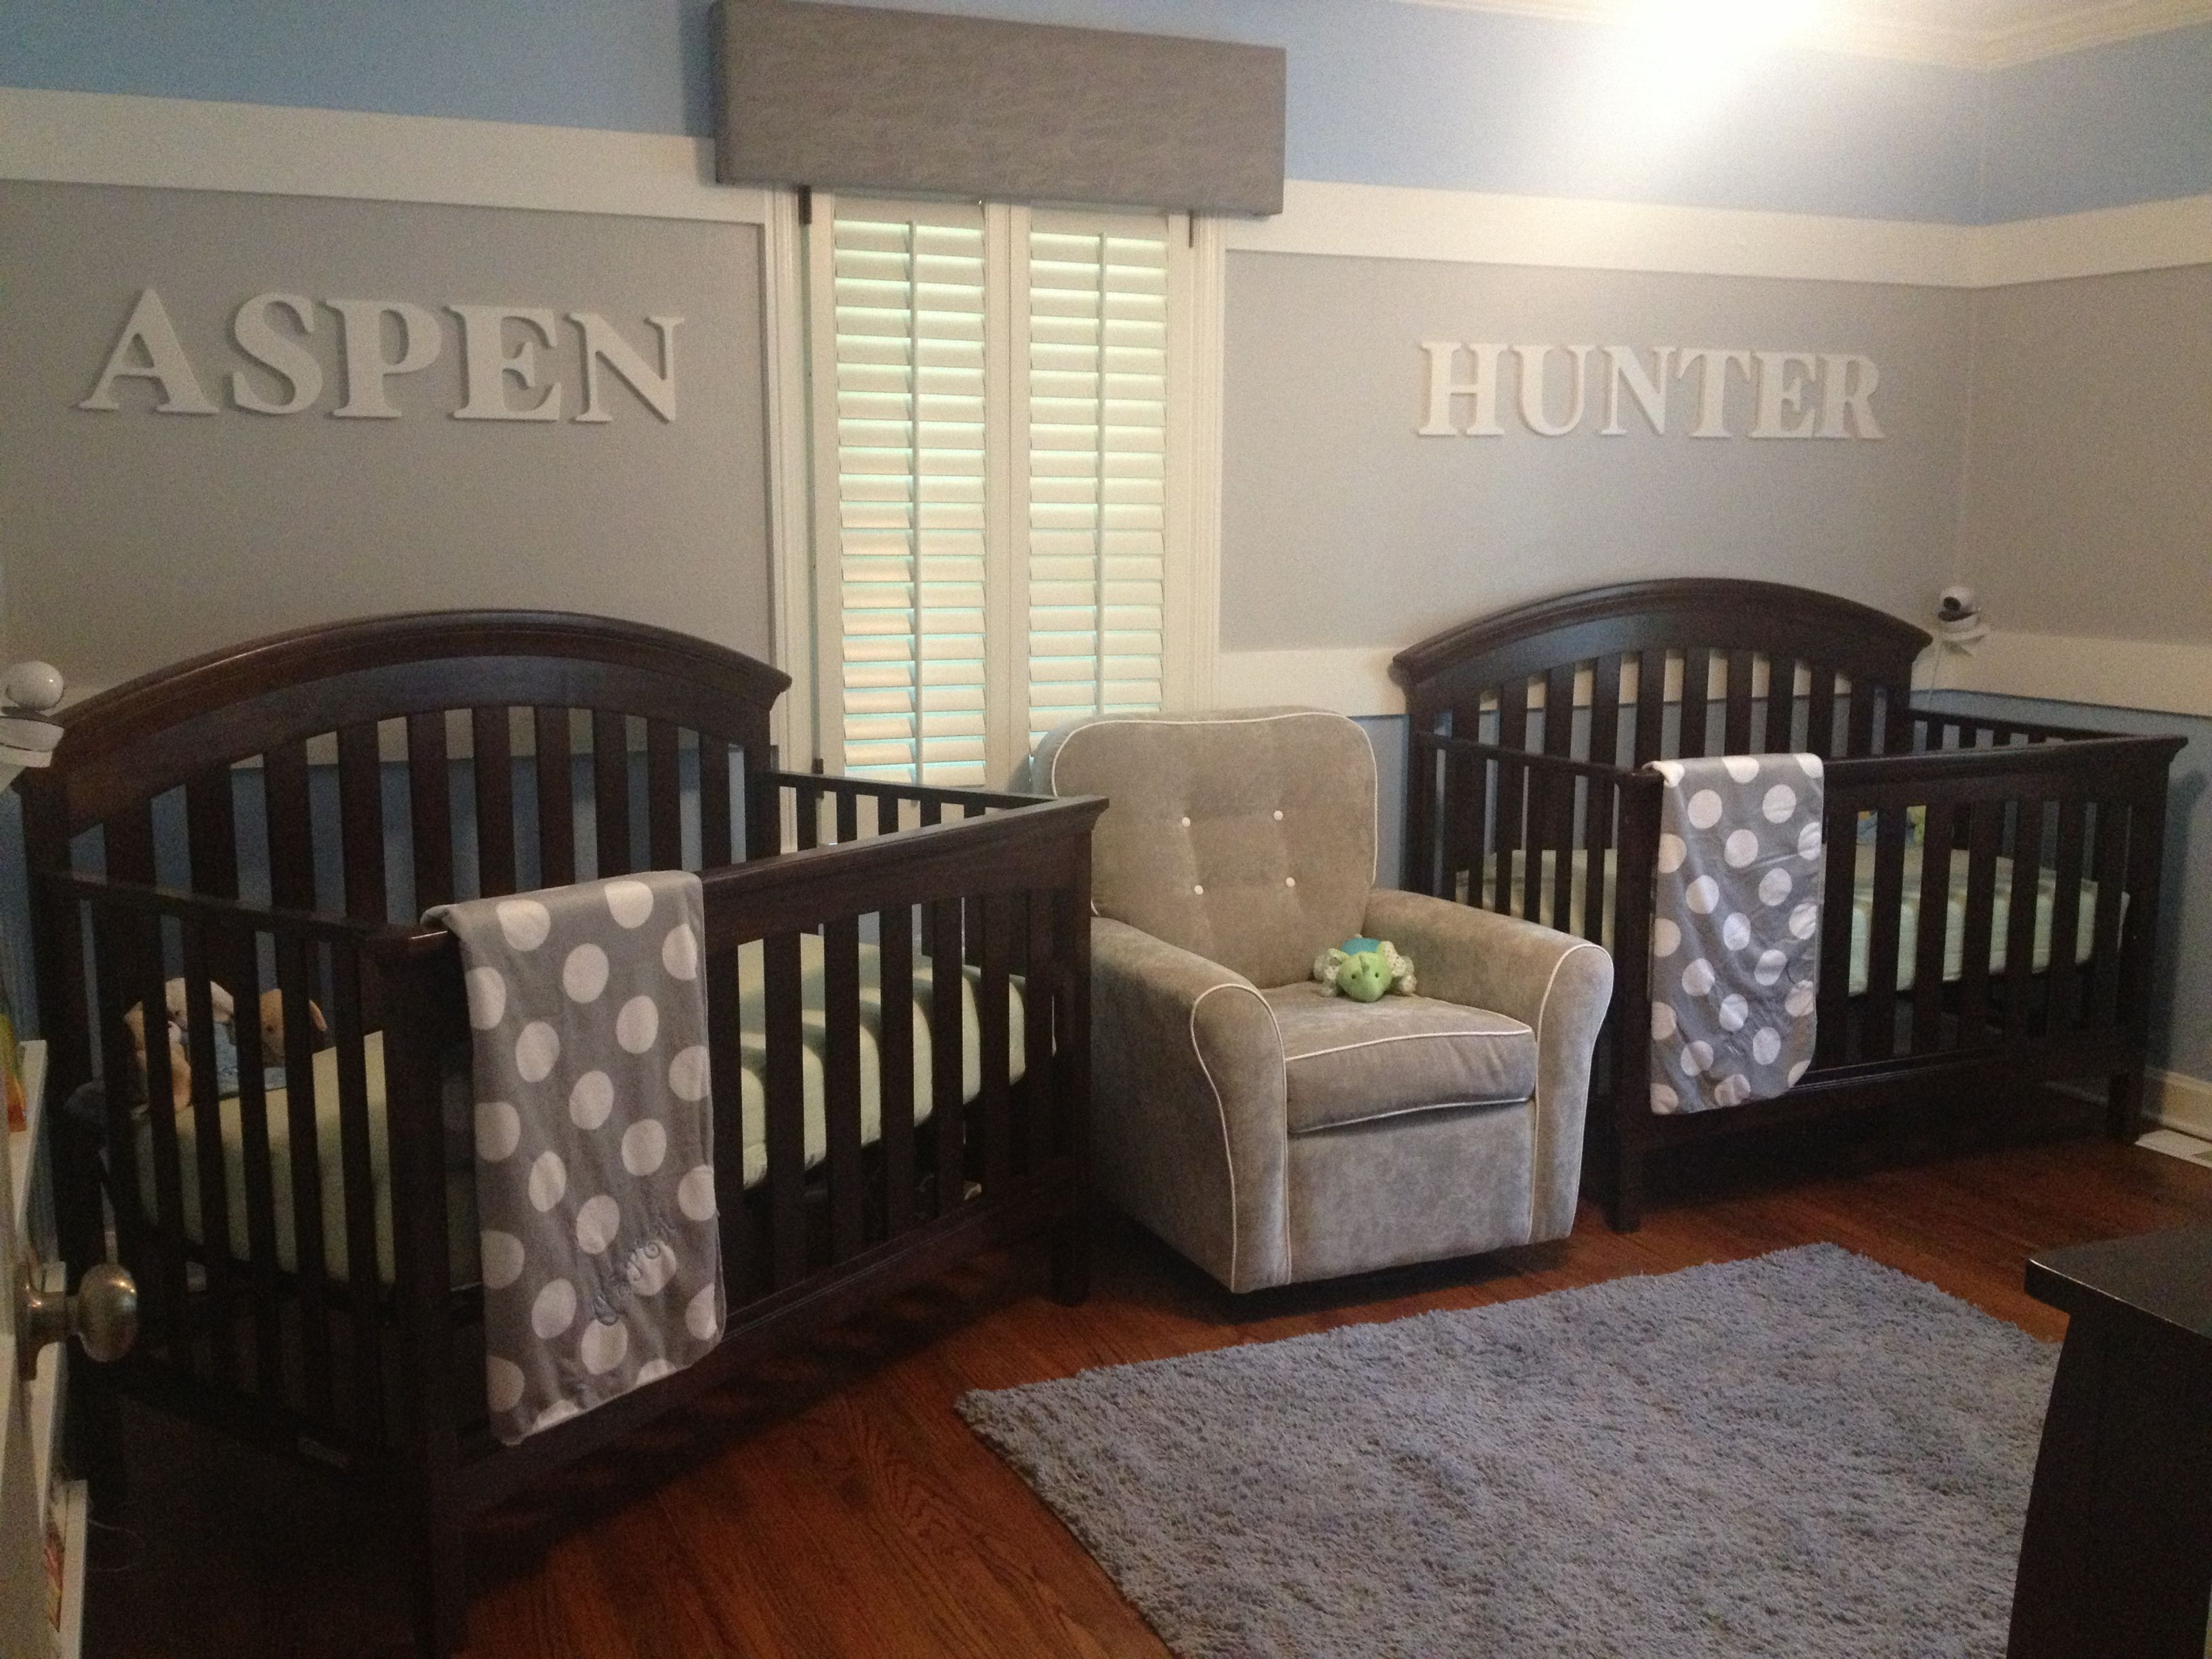 Baby Room Ideas For Twins Our Twin baby boyu0027s nursery